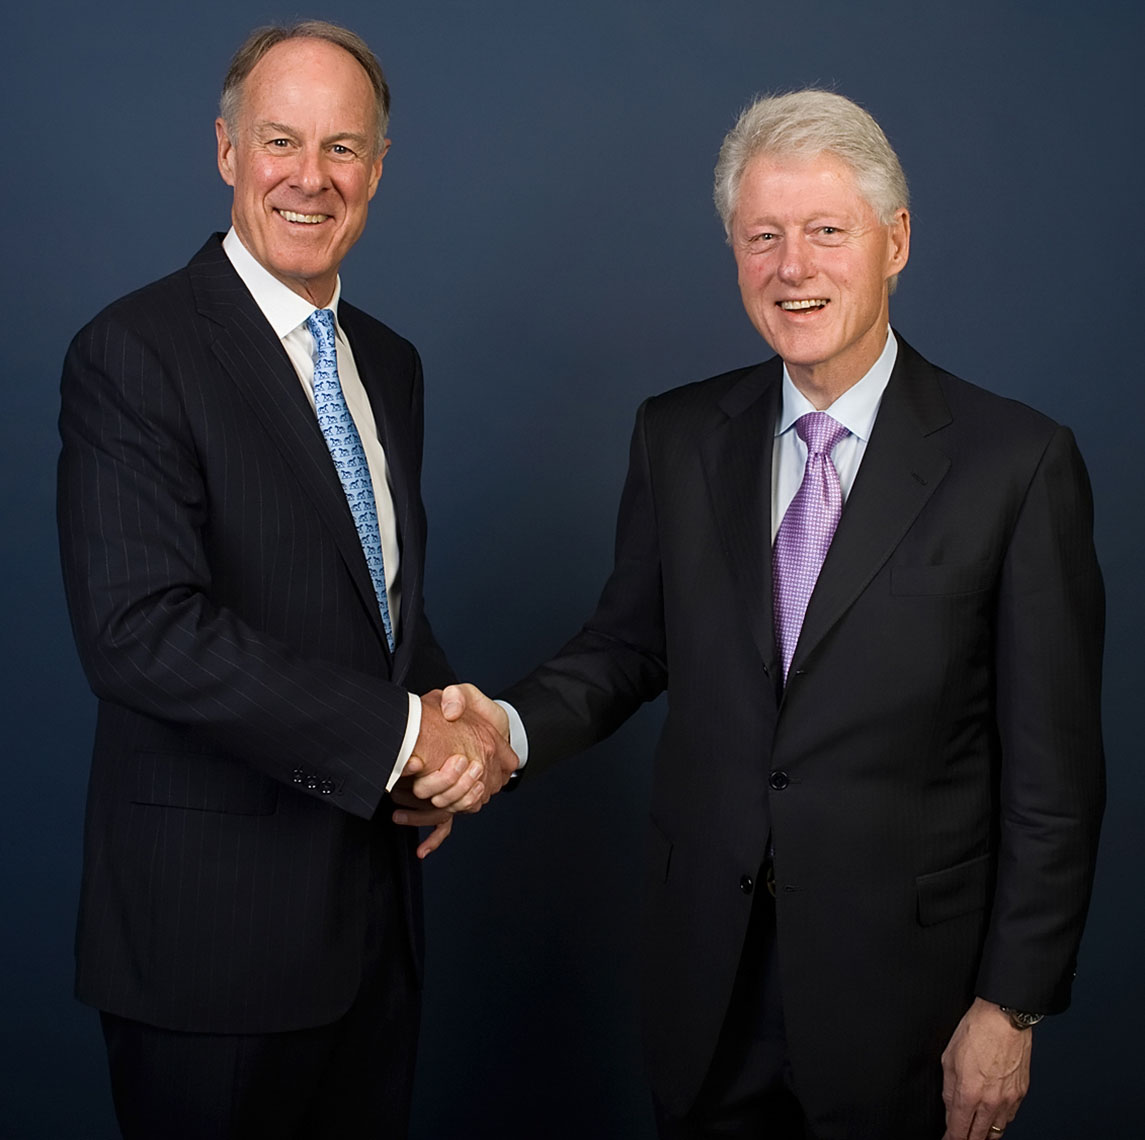 Visa President John Partridge and U.S. President Bill Clinton | Political Photography